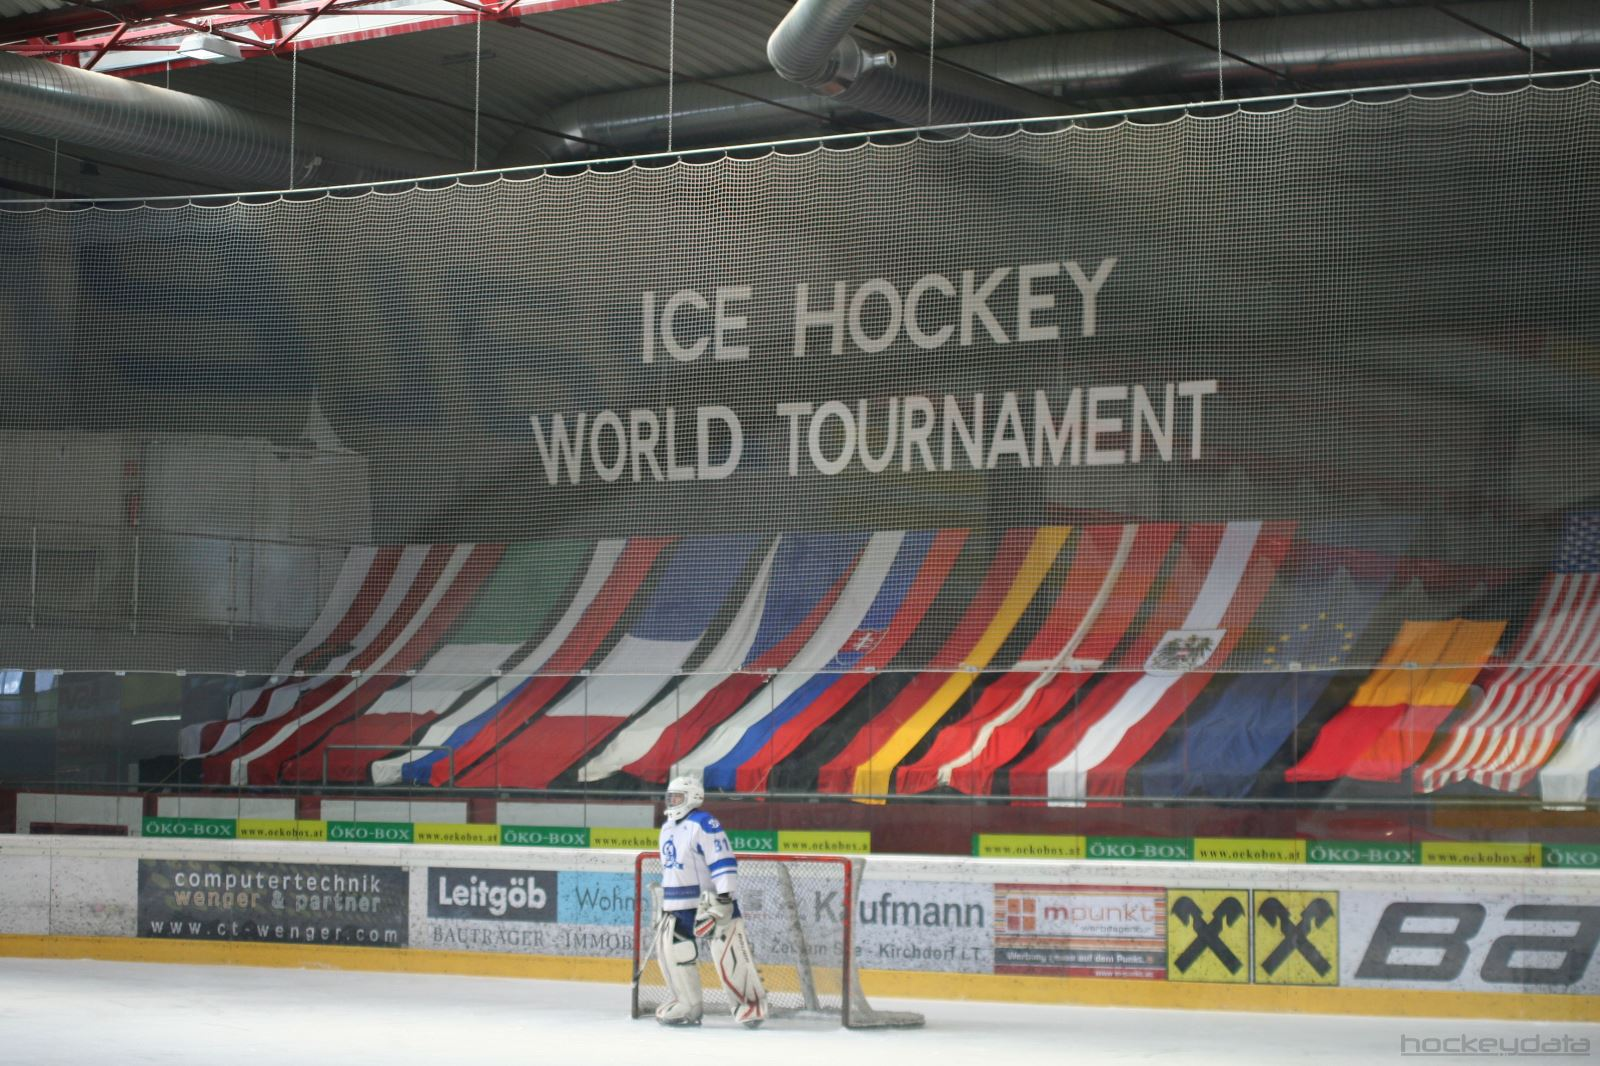 World Tournament XX - Zell am See/Austria